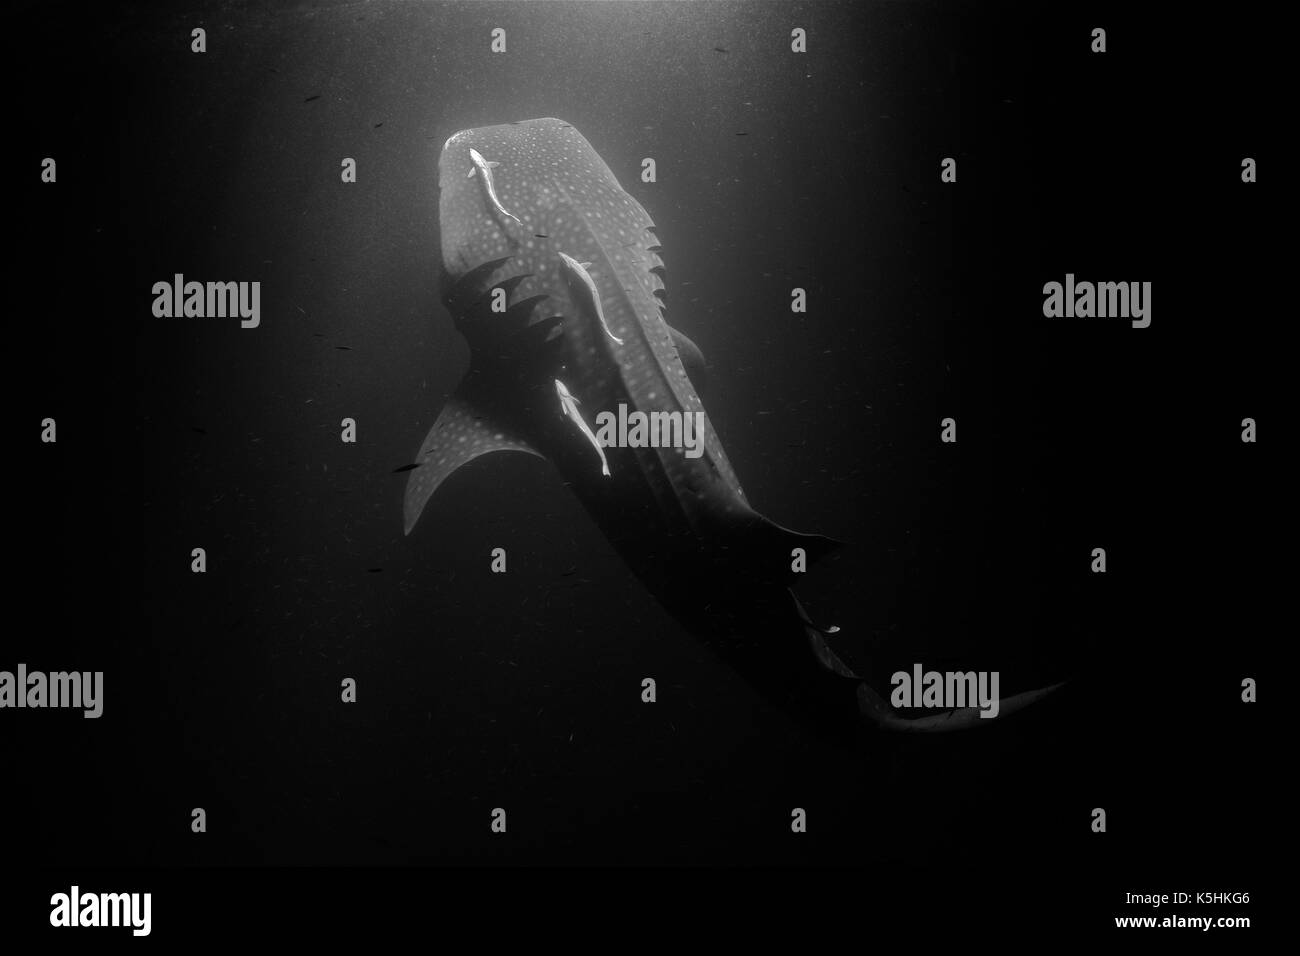 Whale Shark (Rhincodon typus)  Horizontal full body view of a  10 meters individual filter feeding plankton at night. - Stock Image